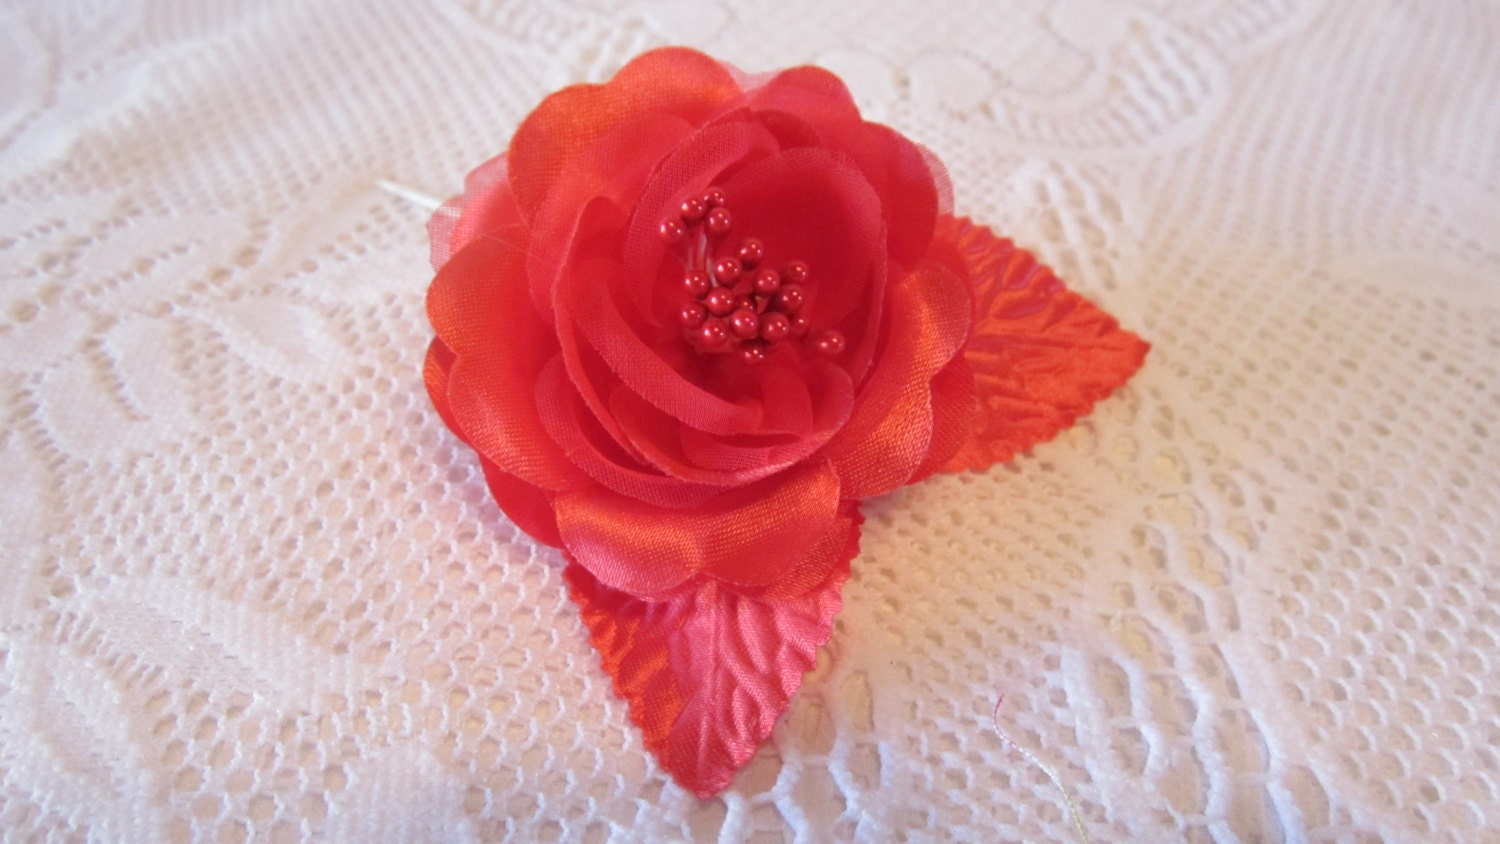 Red Roses for Crafting Bridal Hair Accessories Gowns Wedding Favor Corsage 4 Roses - CarolsCreativeArts